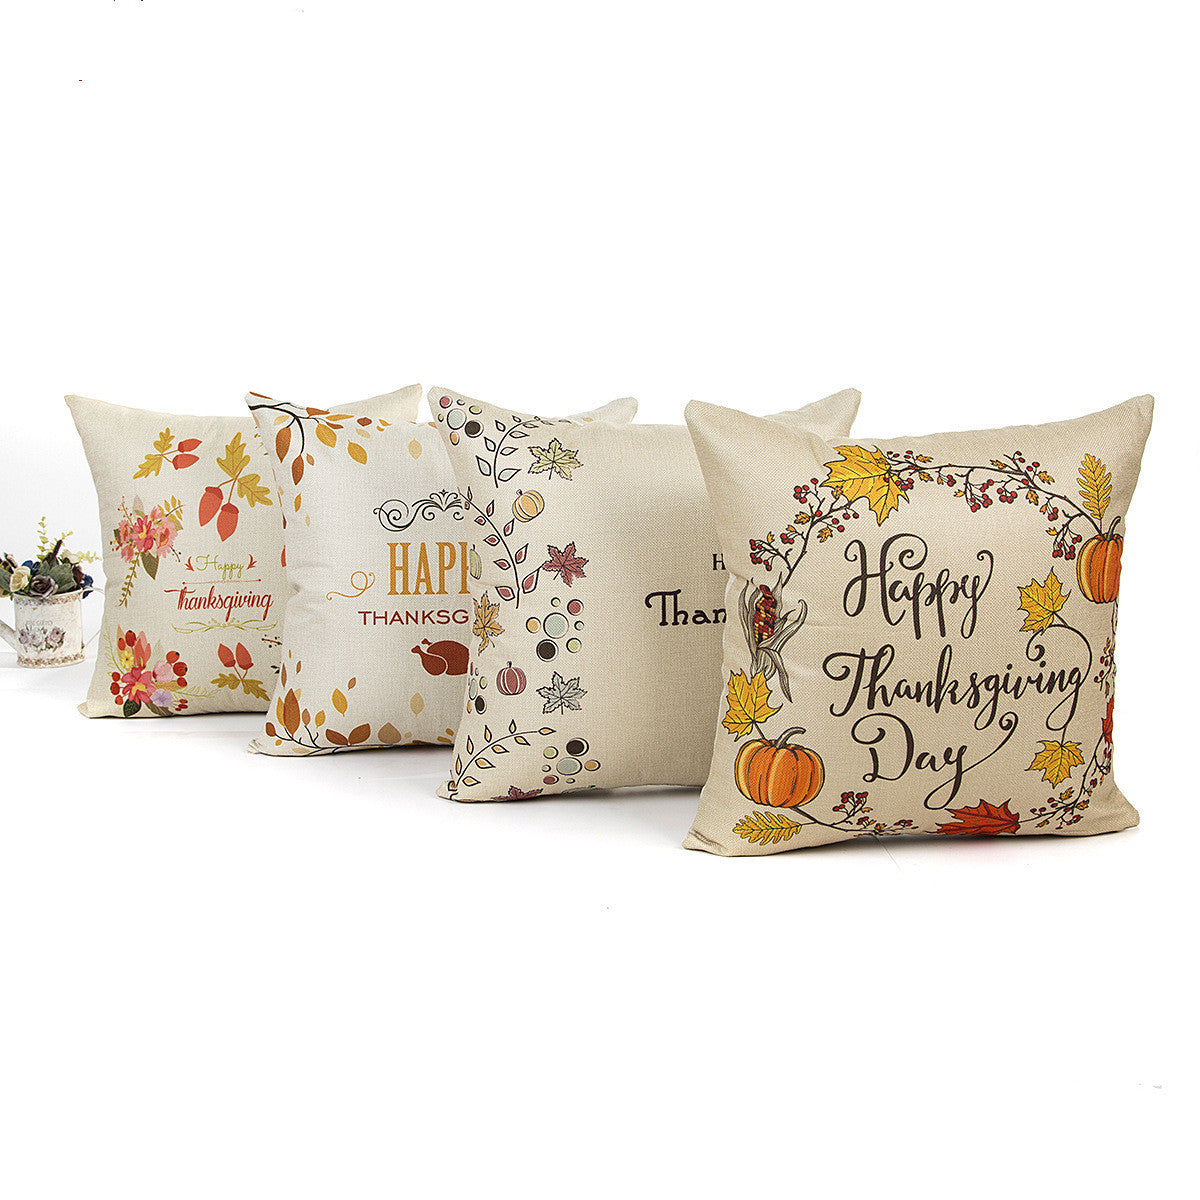 Pumpkin With Quotes Thanksgiving Day Throw Pillow Cover